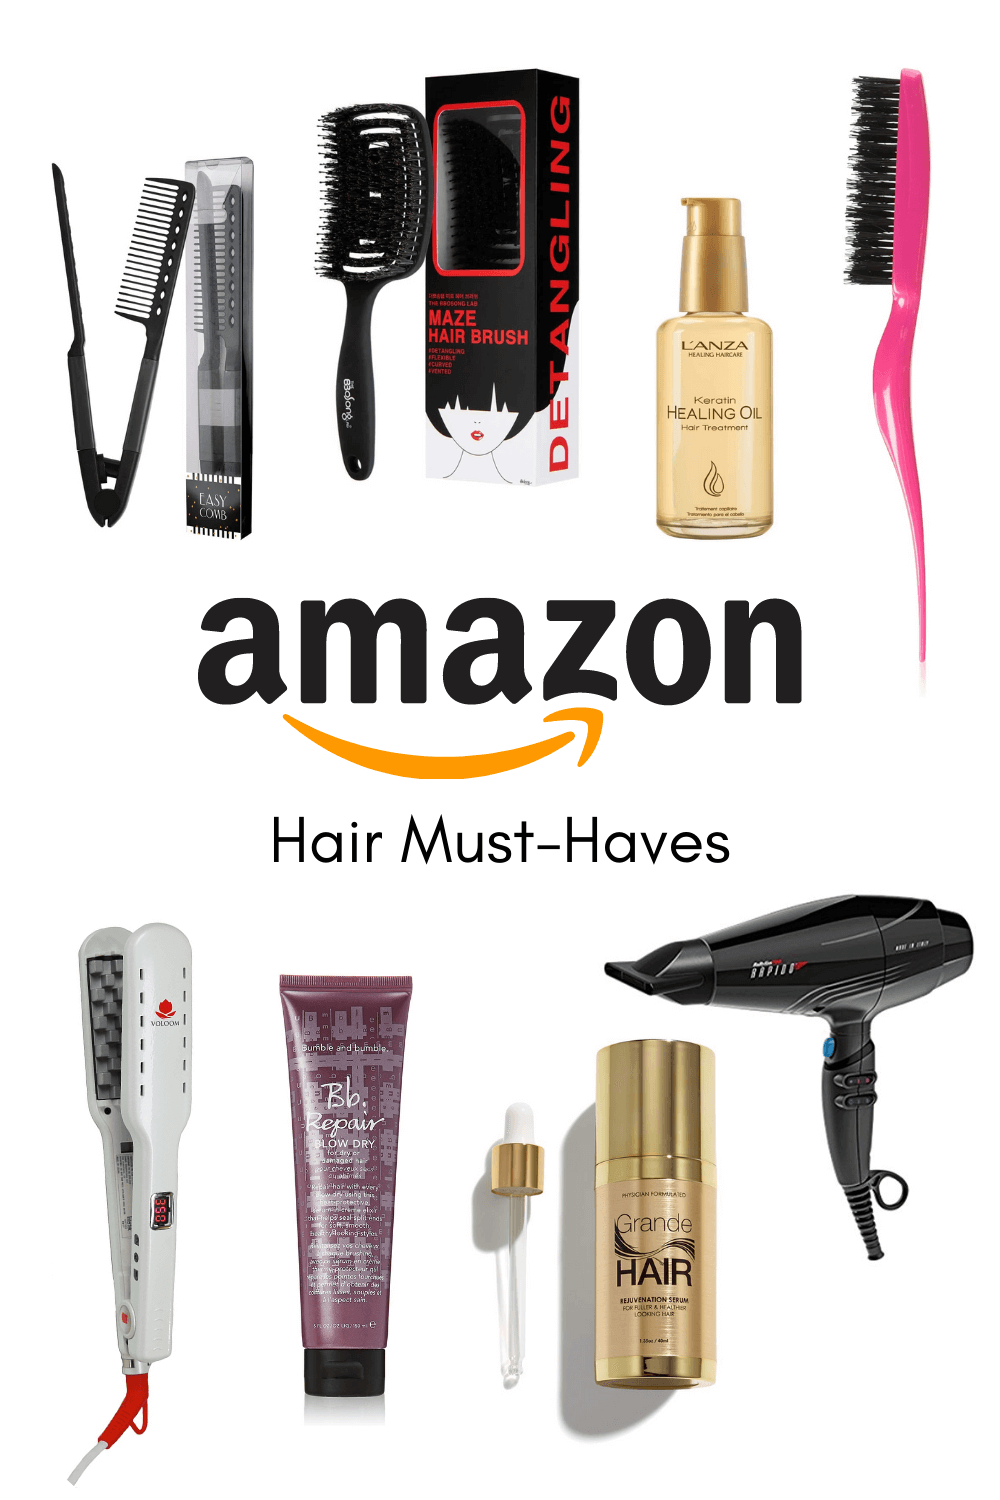 amazon hair must haves